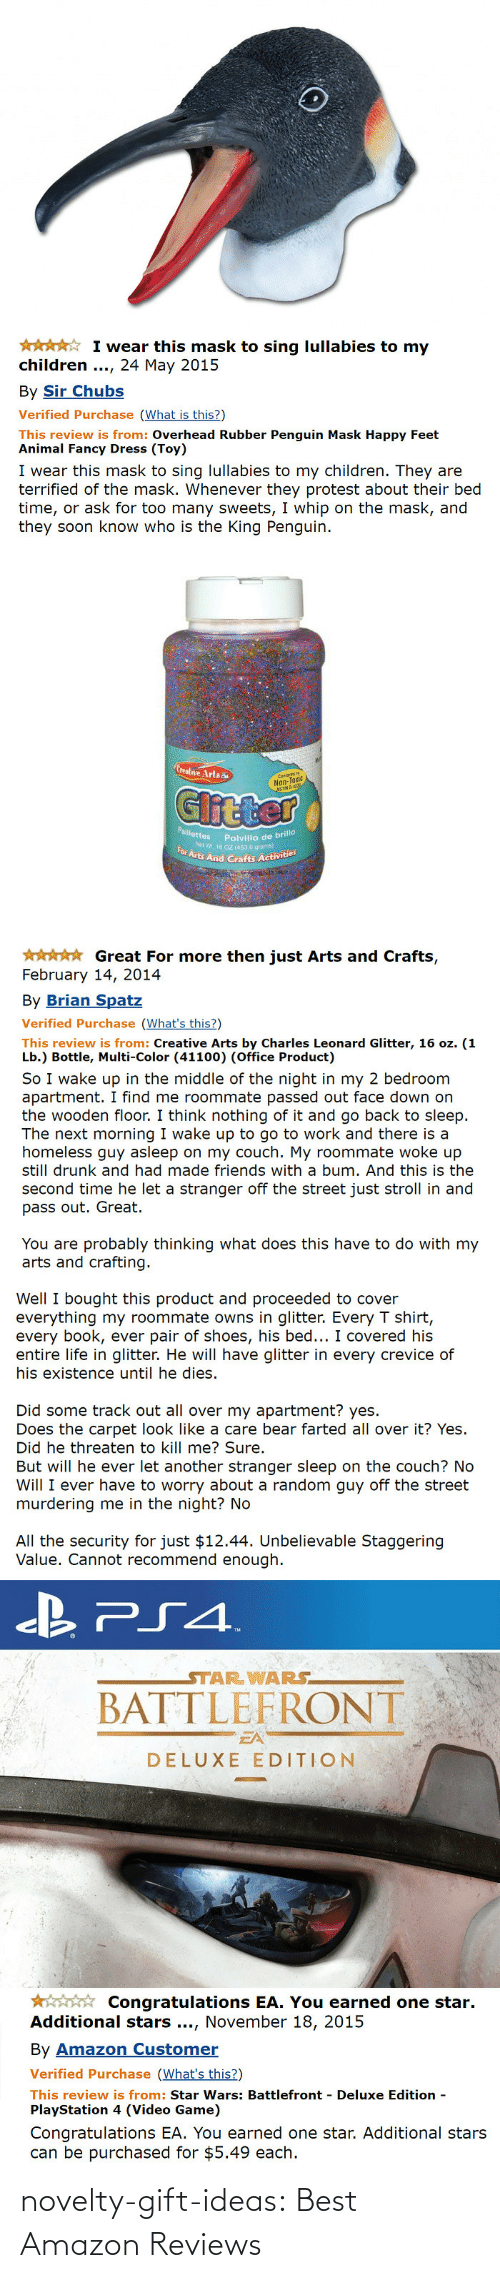 Reviews: novelty-gift-ideas: Best Amazon Reviews